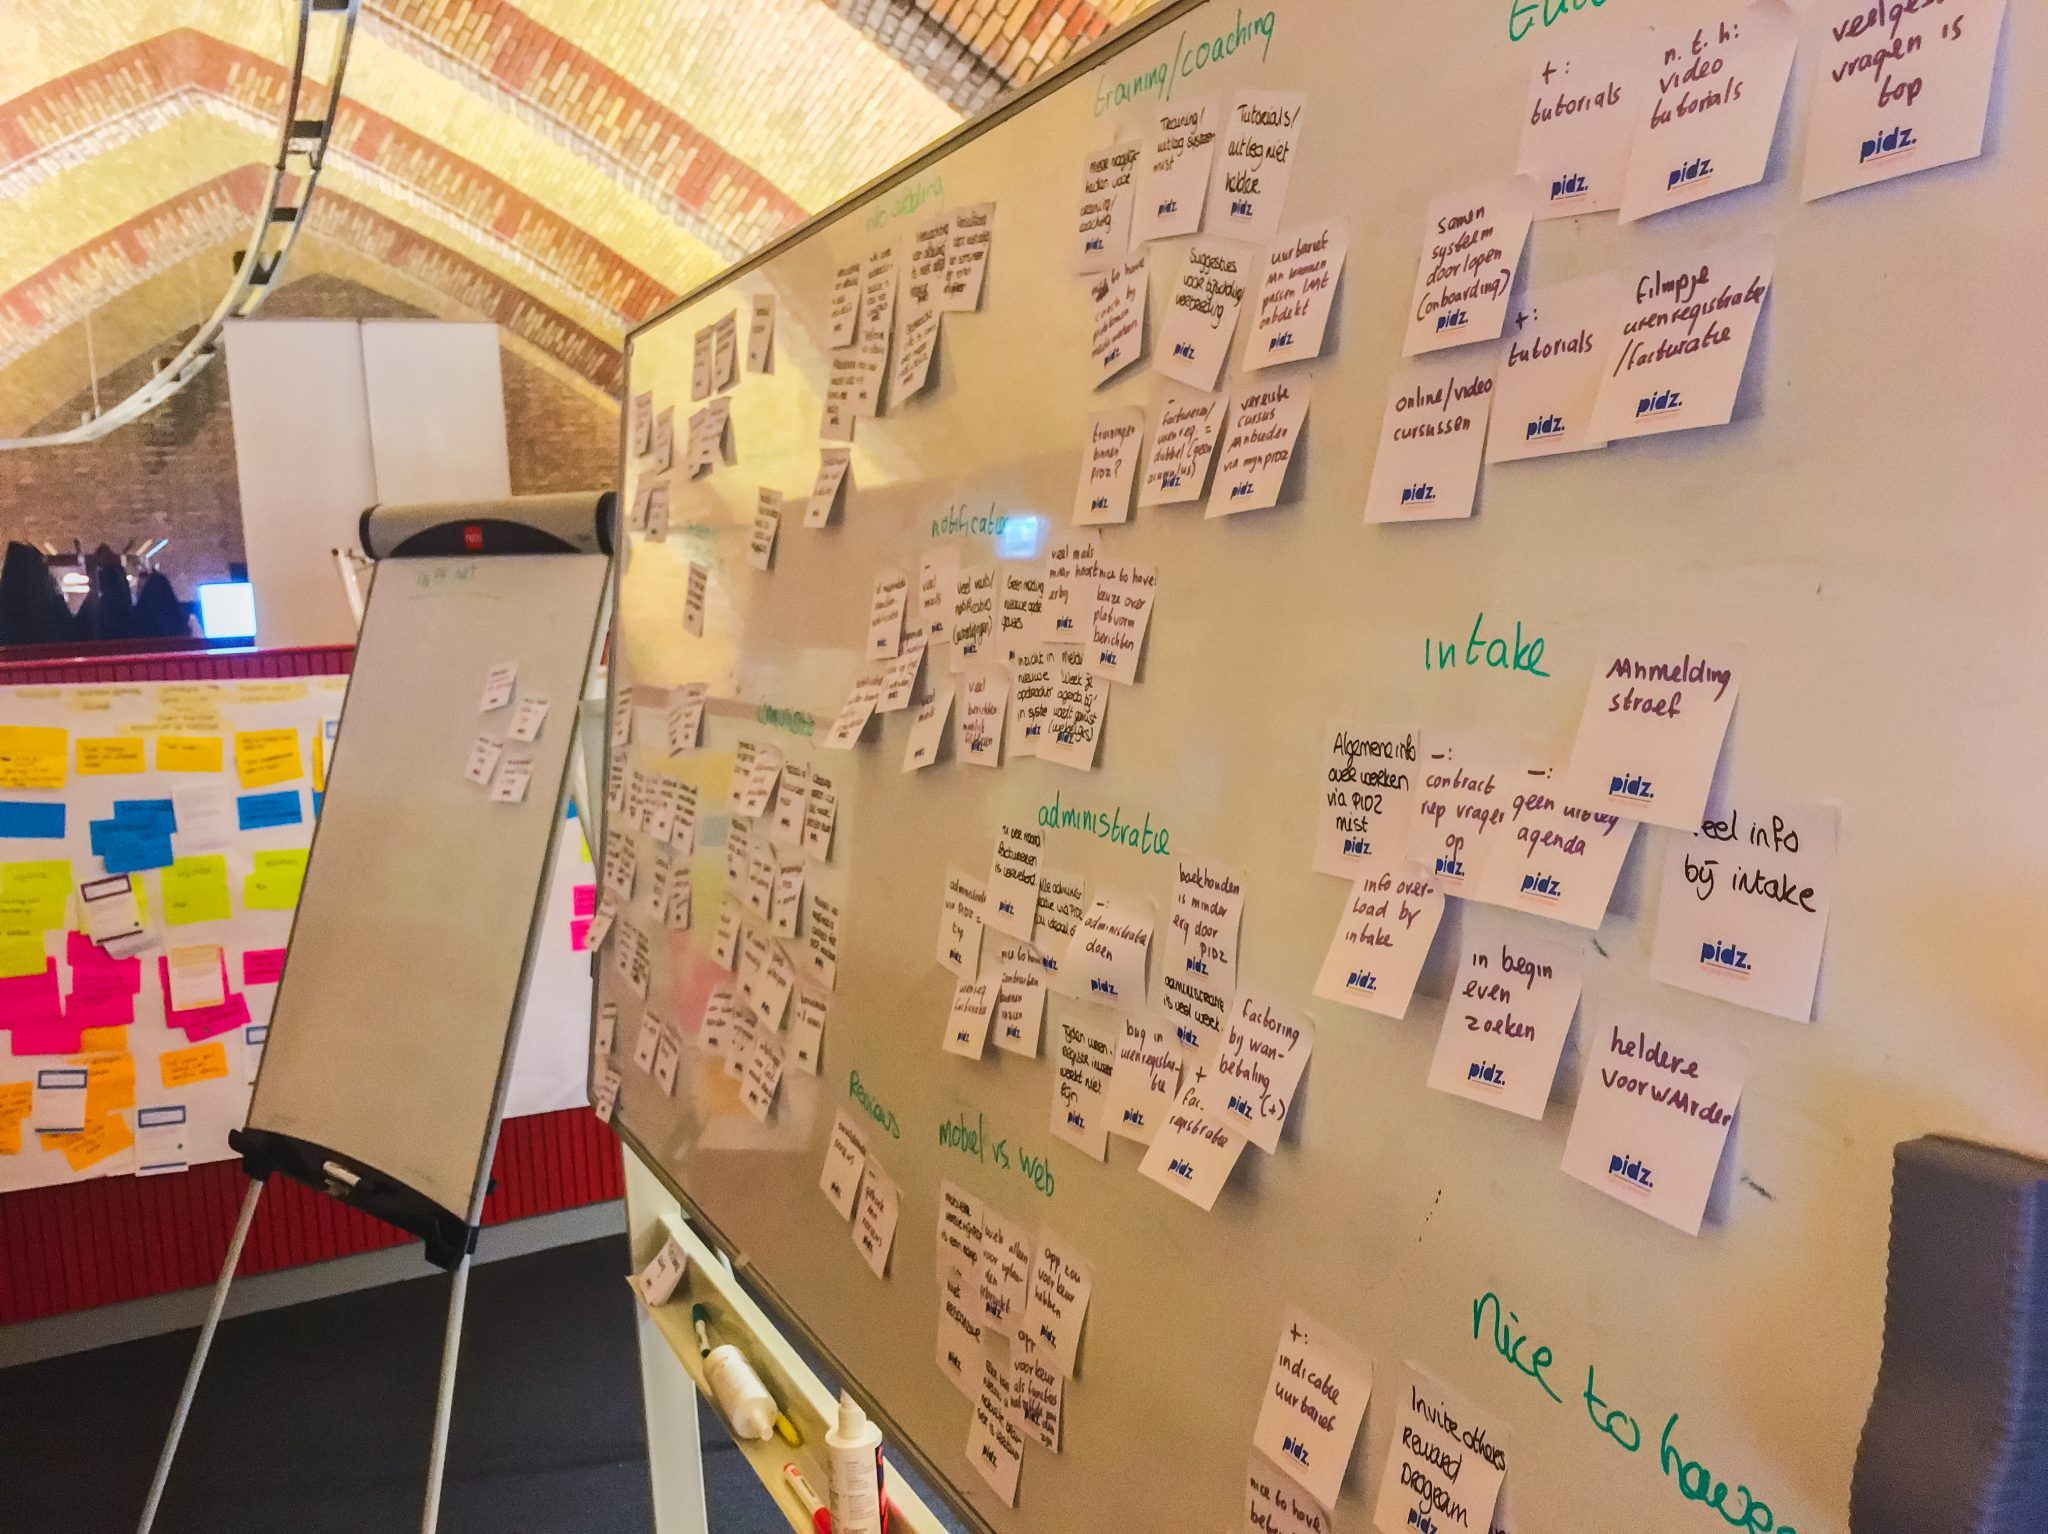 Affinity Mapping User Research PIDZ